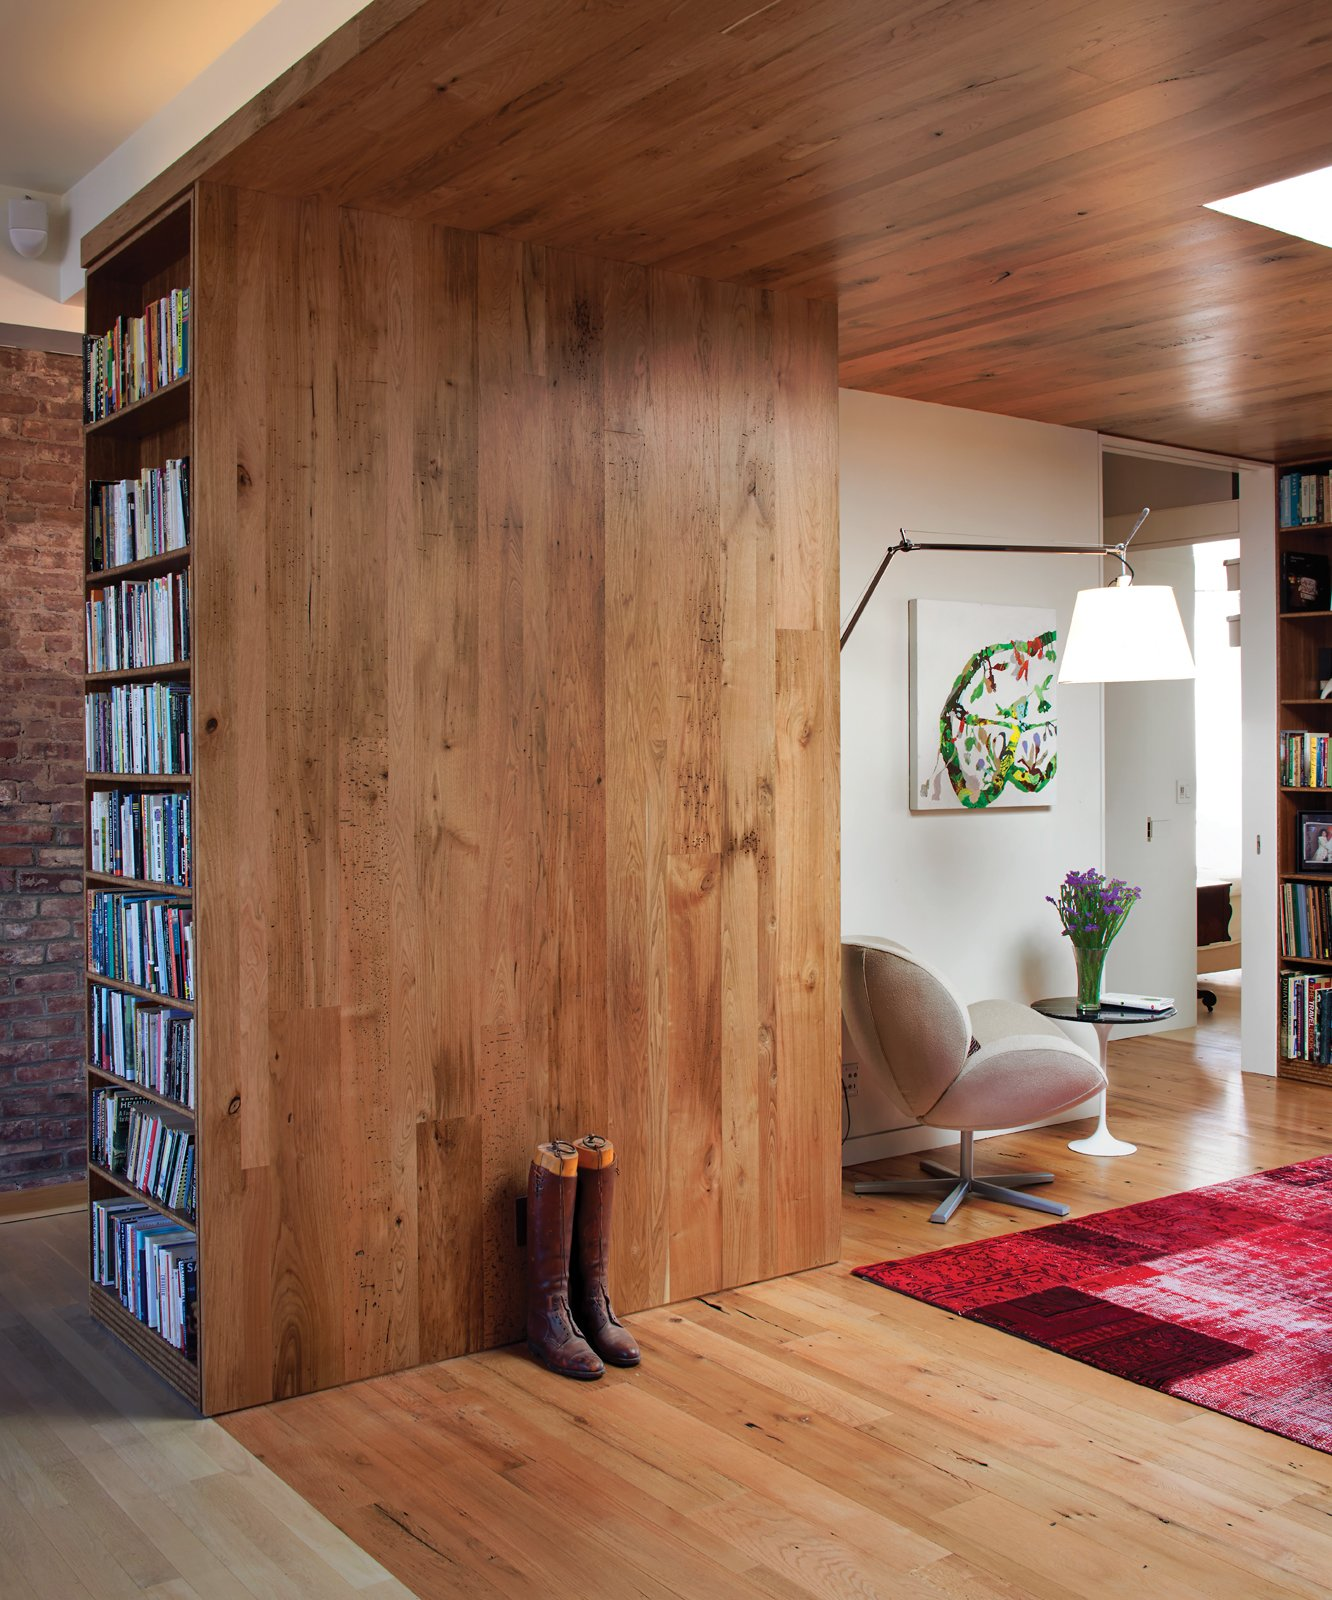 8 Beautiful Home Projects Using Reclaimed Wood